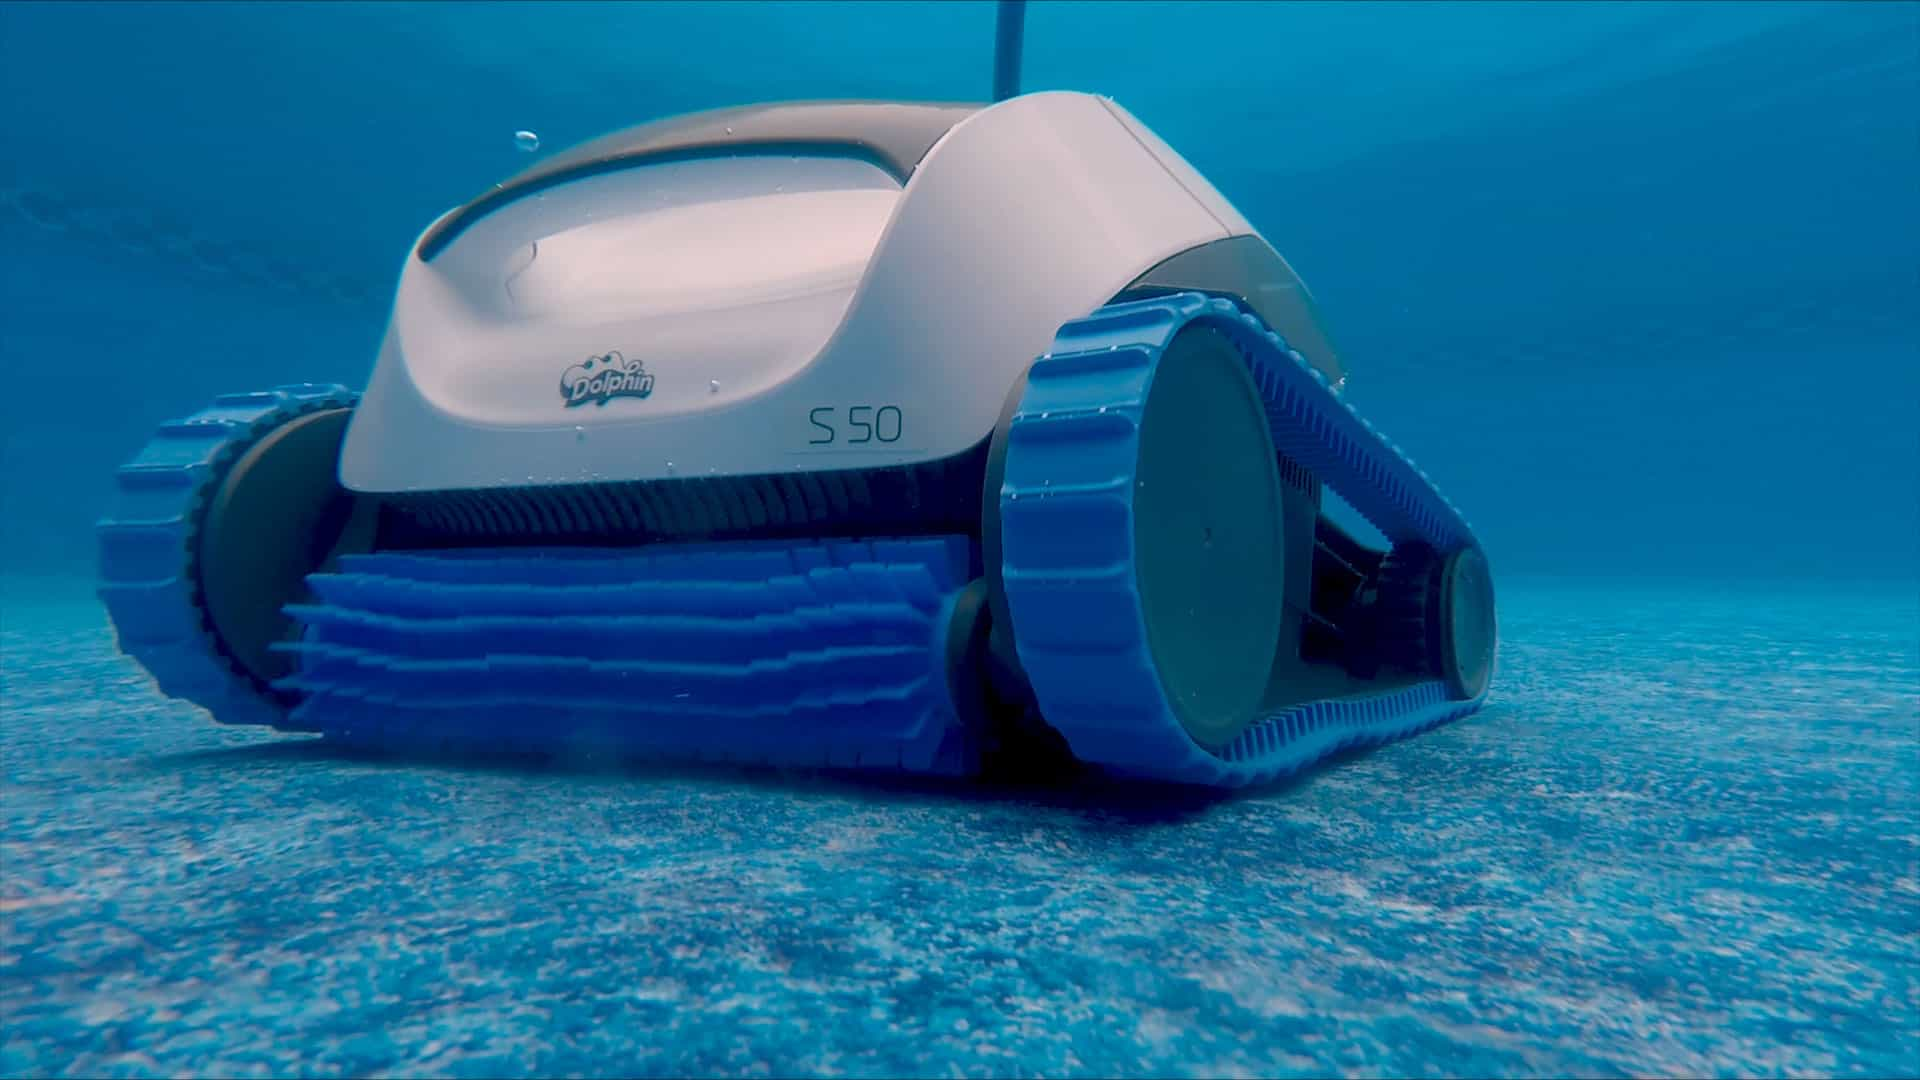 Dolphin S50 Robotic Pool Cleaner Brushes